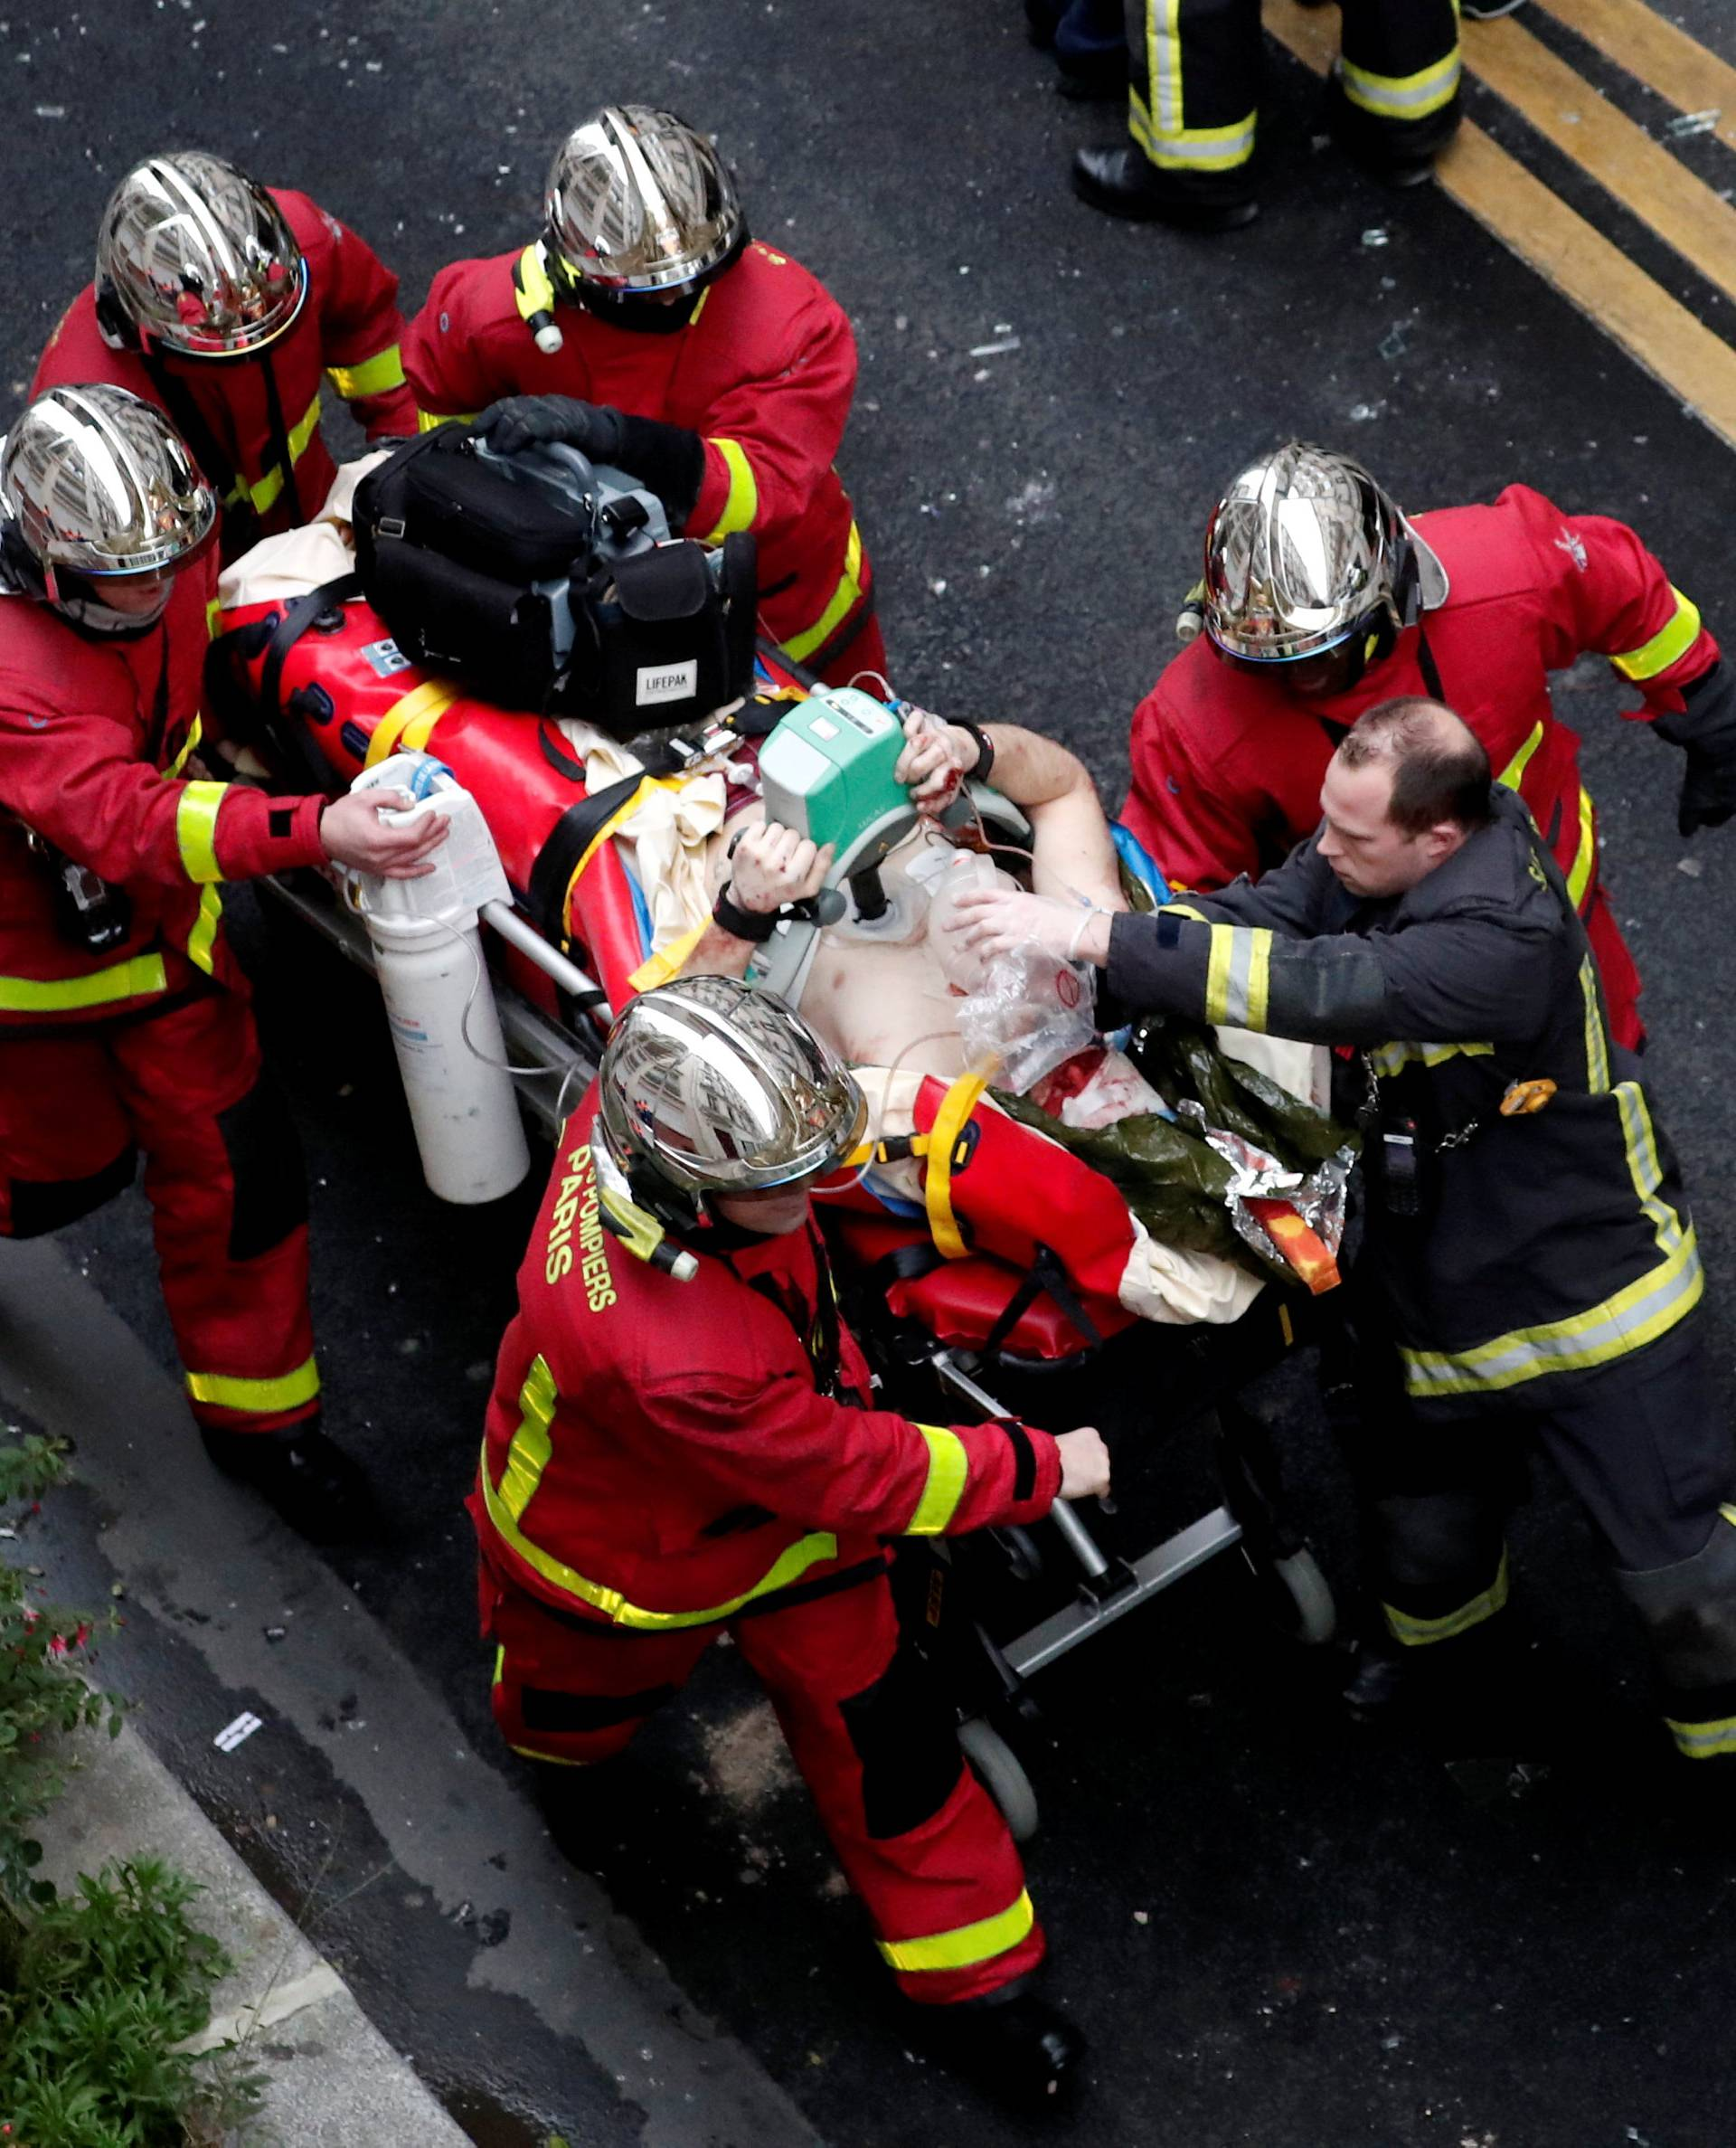 Firemen wheel a stretcher carrying a man injured in an explosion in a bakery shop in the 9th District in Paris